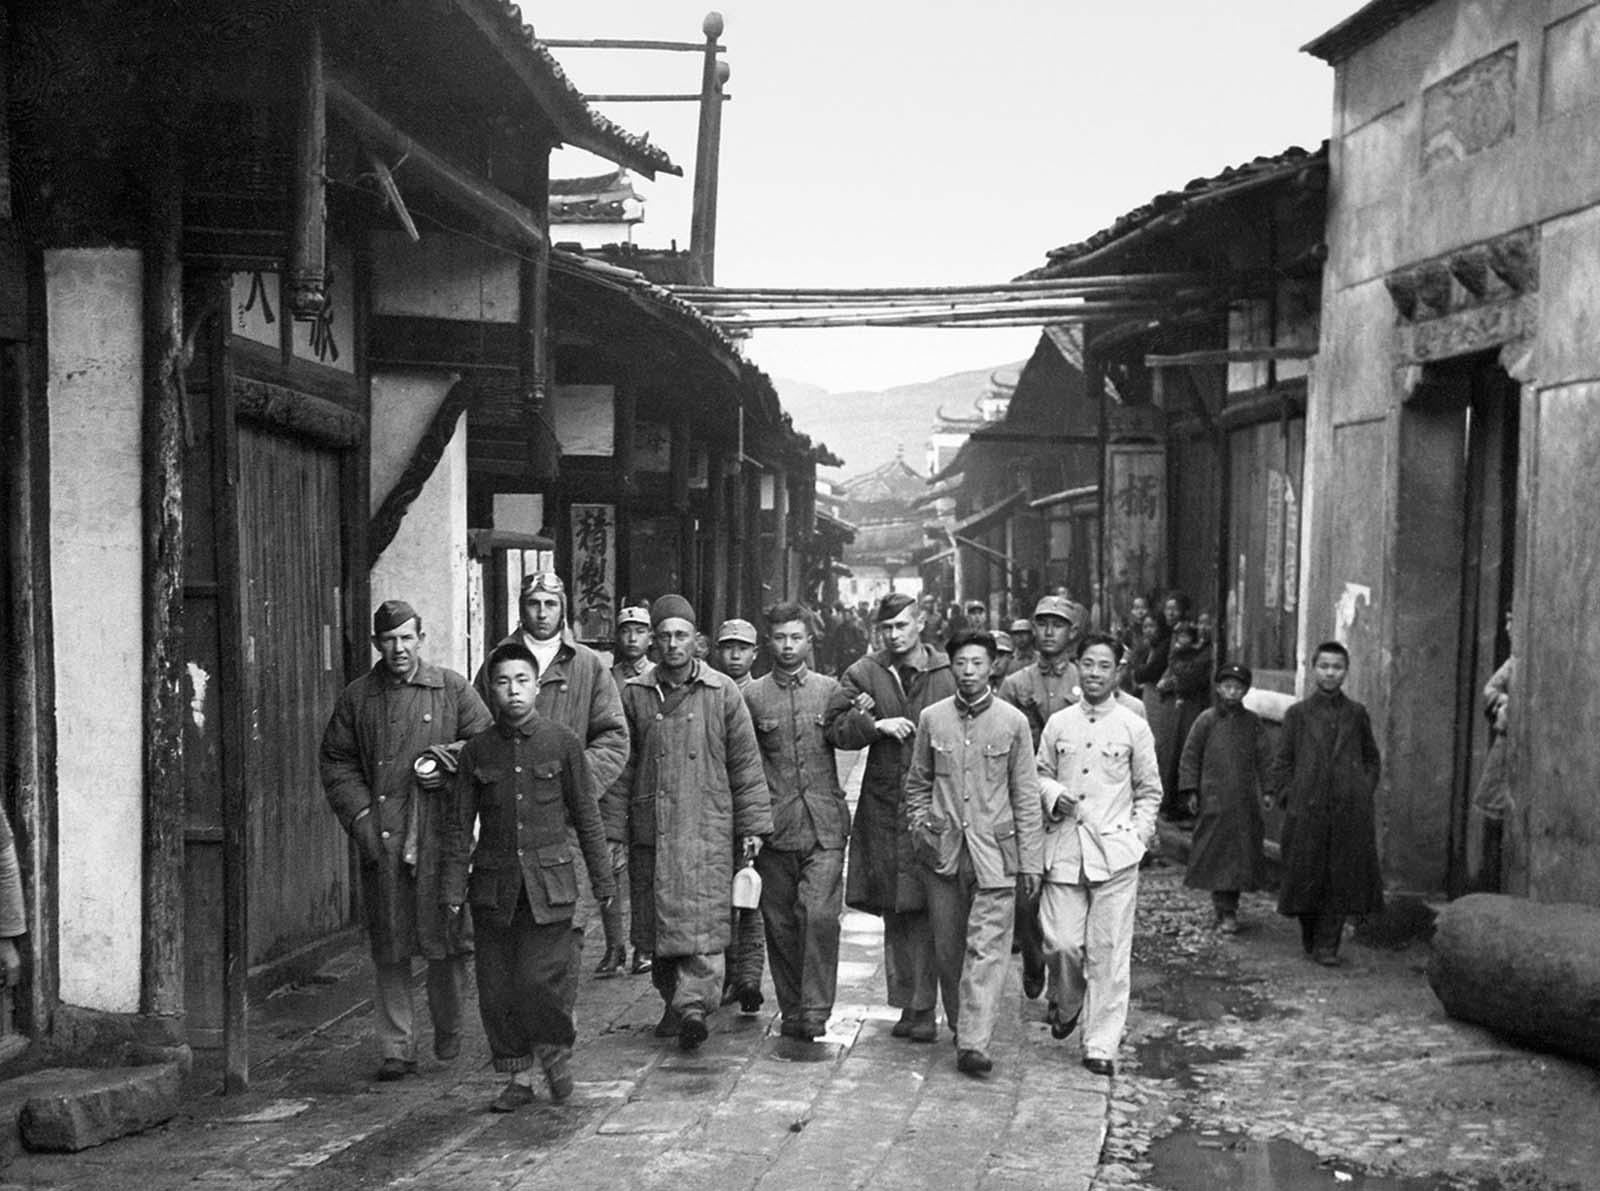 Four unidentified Doolittle Raid crewmen, who bailed out over China from Aircraft #14, are escorted in a Chinese village before being reunited with other airmen in April of 1942. Most of the crew members made it to China, either crash landing, or bailing out over land. The assistance given by the Chinese to the airmen spurred the Japanese Imperial Army to carry out a retaliatory action called the Zhejiang-Jiangxi Campaign -- over the course of four months, entire villages were destroyed, and an estimated 250,000 Chinese civilians were killed.